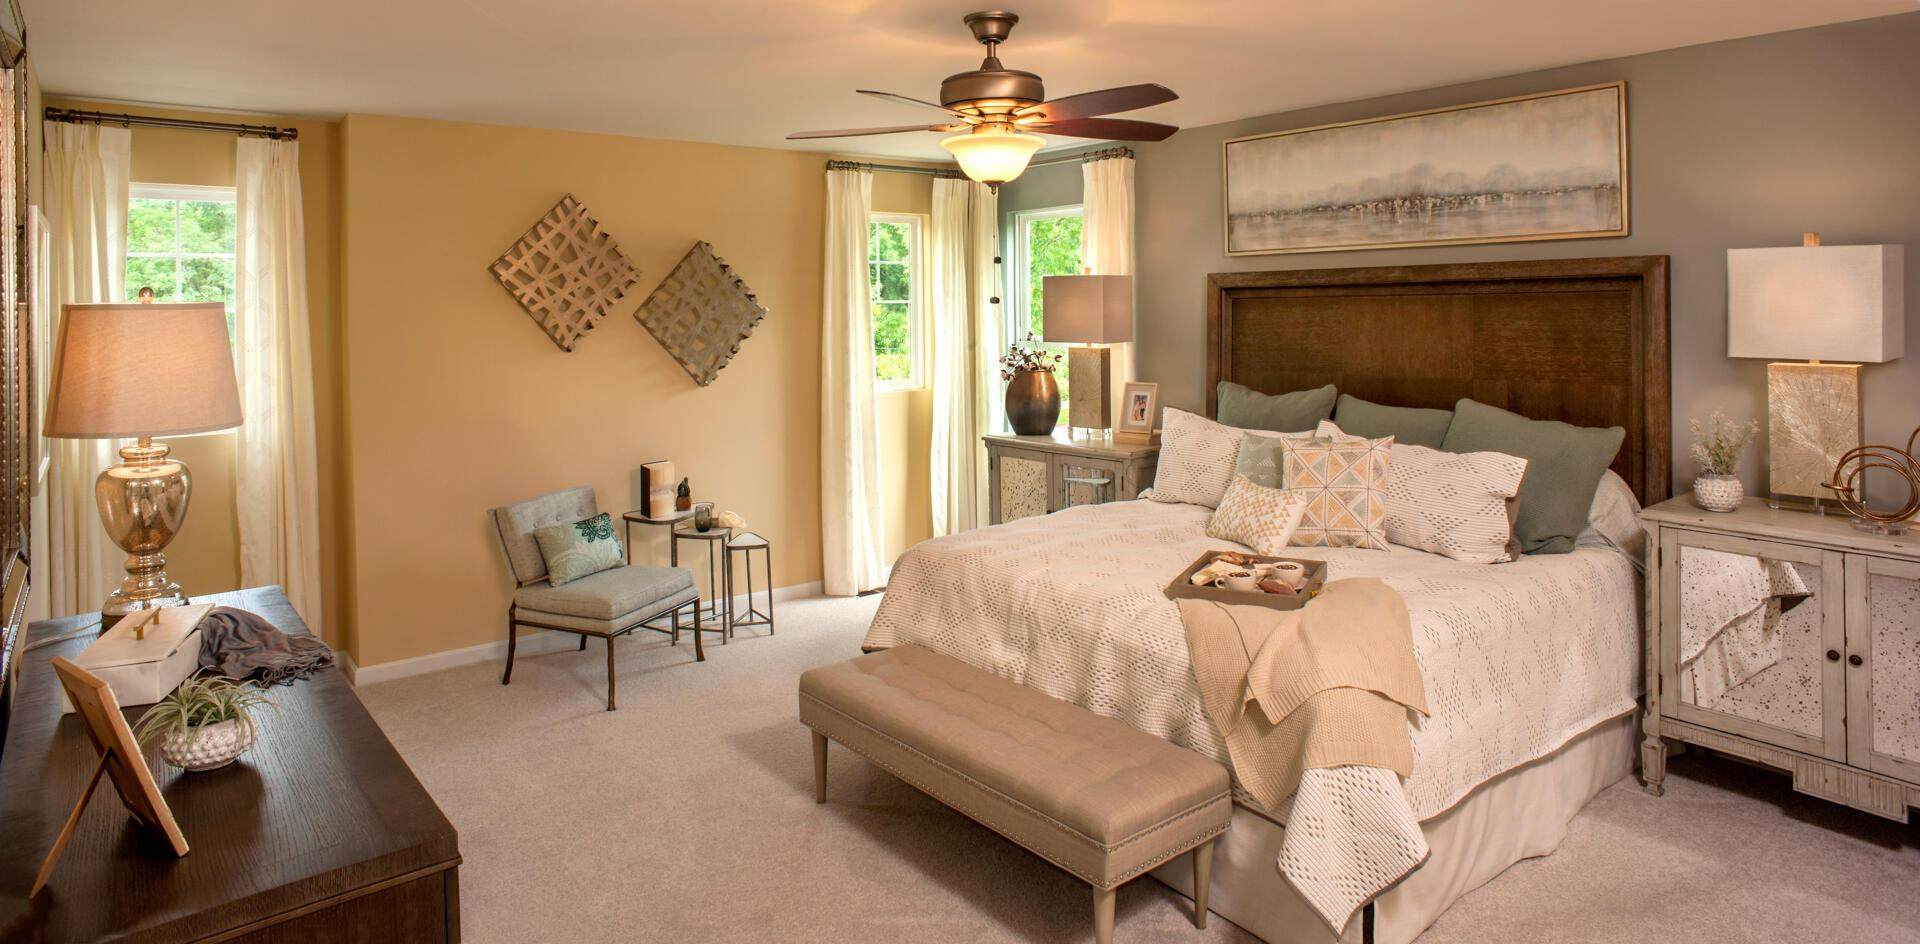 Bedroom featured in the Quentin By Drees Homes in Cincinnati, OH